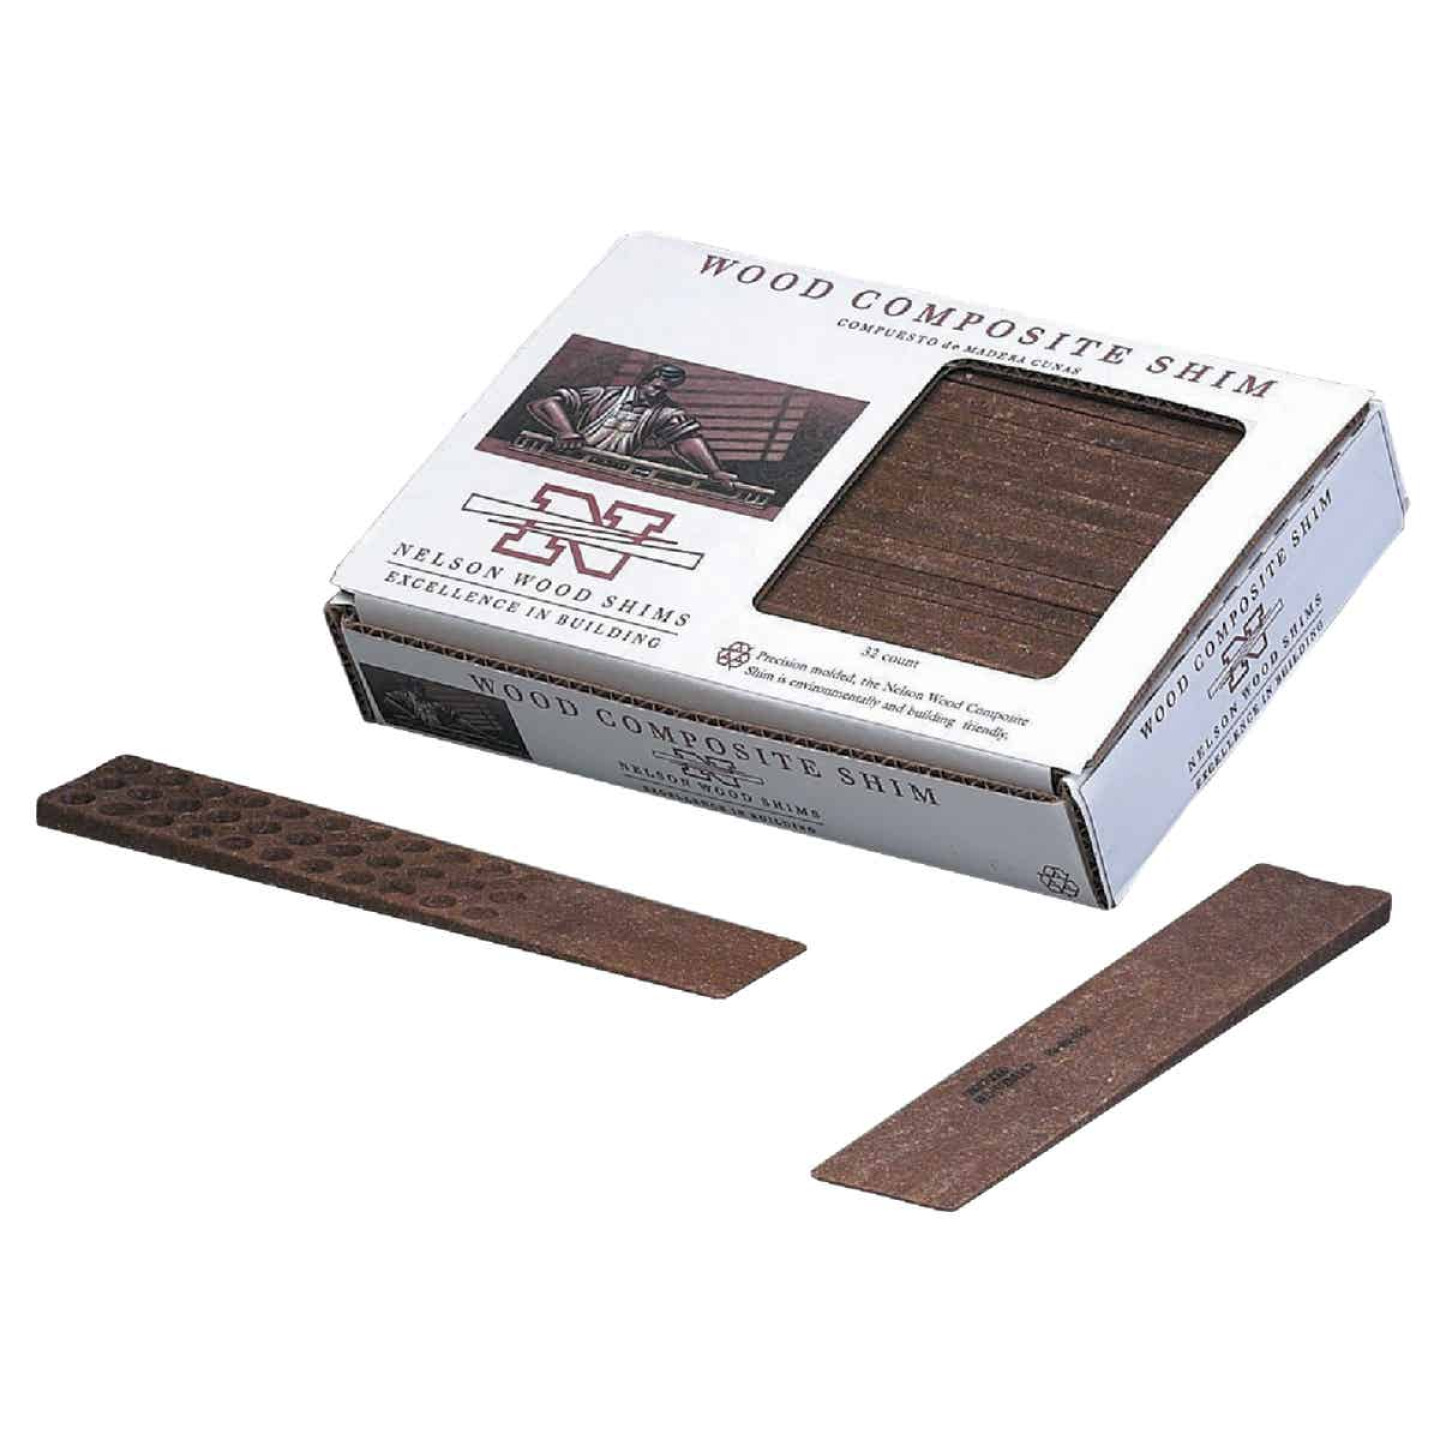 Nelson Wood Shims 8 In. L Wood Fiber Composite Shim (32-Count) Image 1